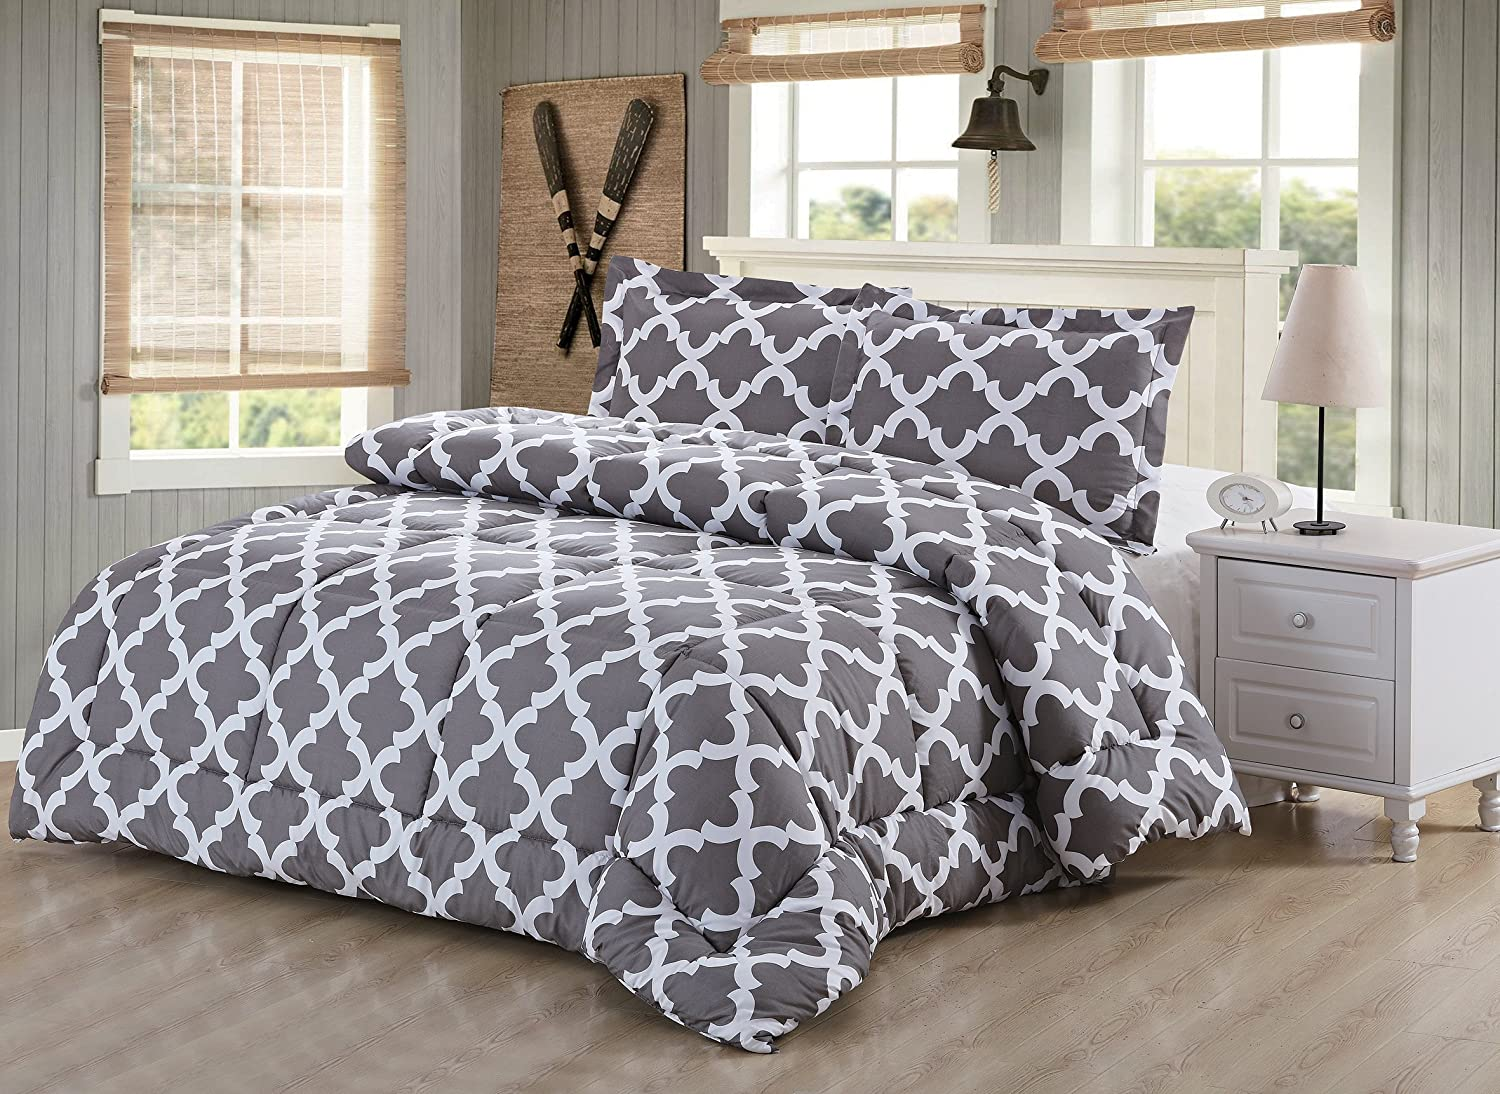 Printed Comforter Set (Grey, King) with 2 Pillow Shams